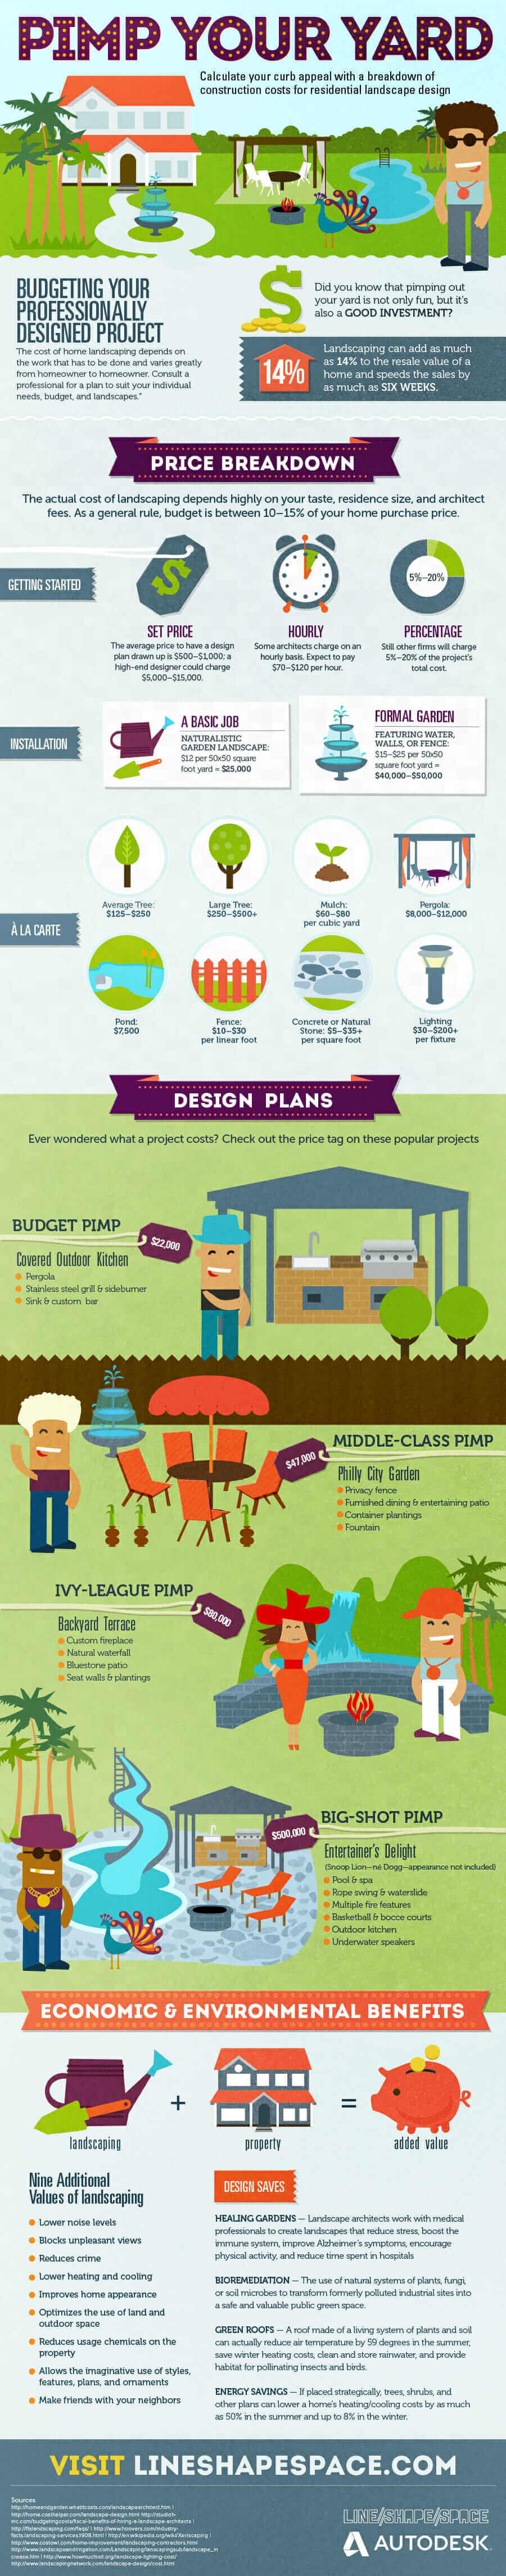 What is Landscape Architecture: Pimp Your Yard Infographic